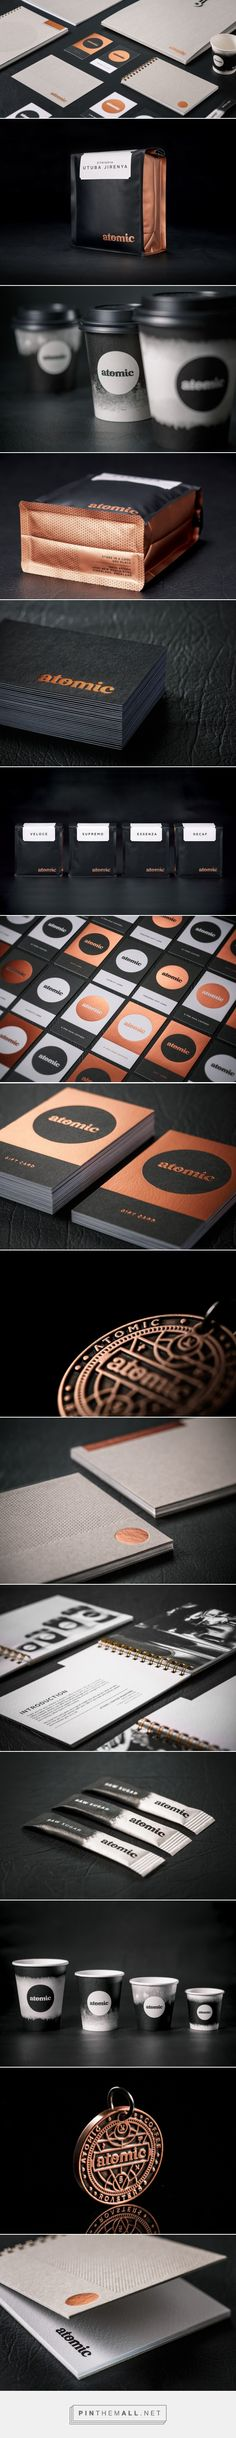 Atomic Coffee Roaster Branding by Fuman | Fivestar Branding Agency – Design and Branding Agency & Curated Inspiration Gallery